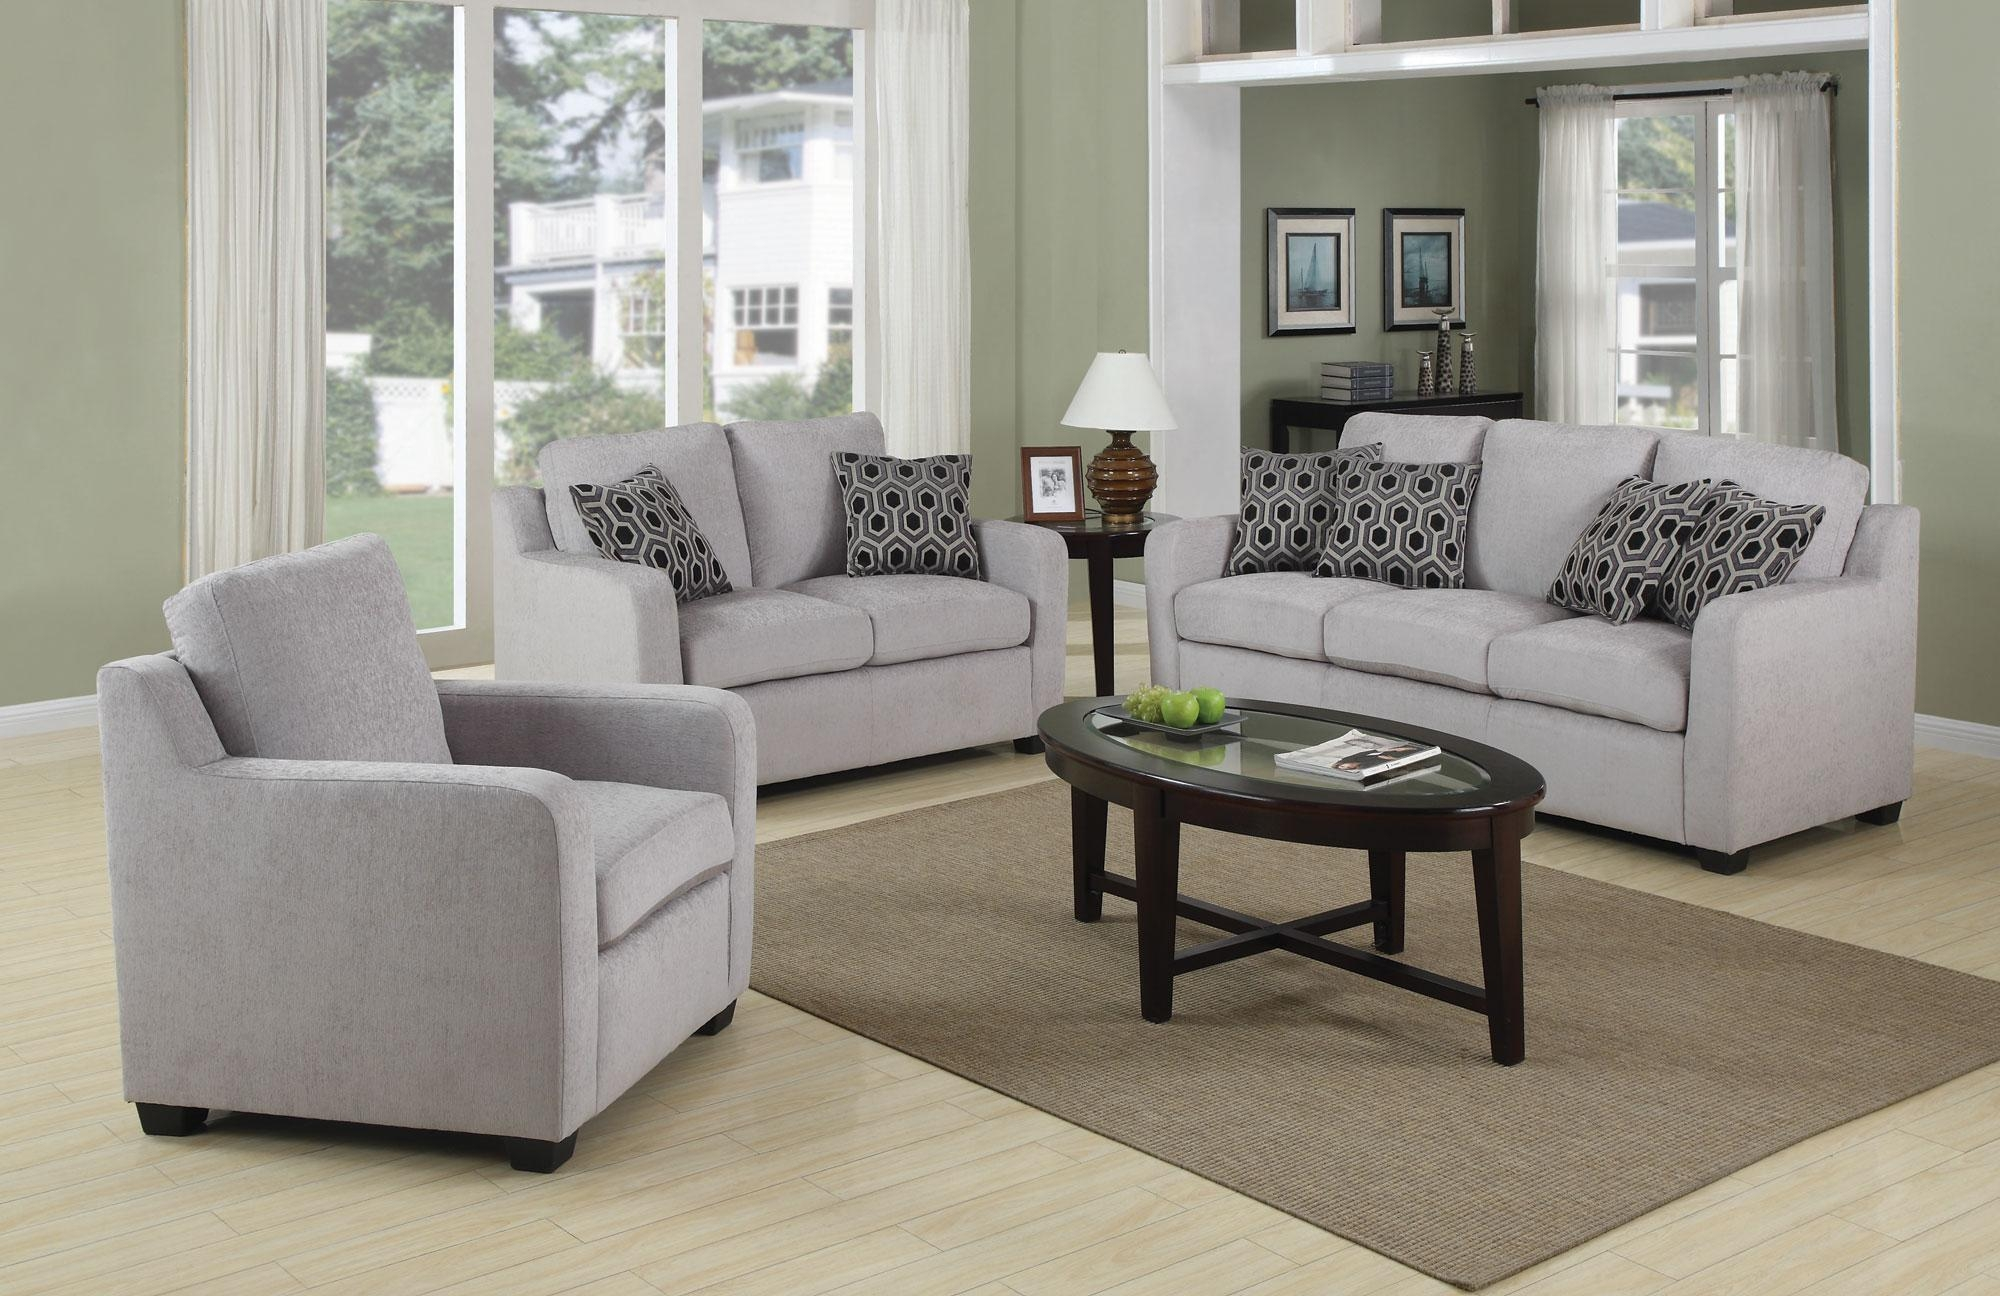 Furniture: Amazing Set Of Chairs For Living Room Setting Furniture Inside Living Room Sofas And Chairs (Image 3 of 20)